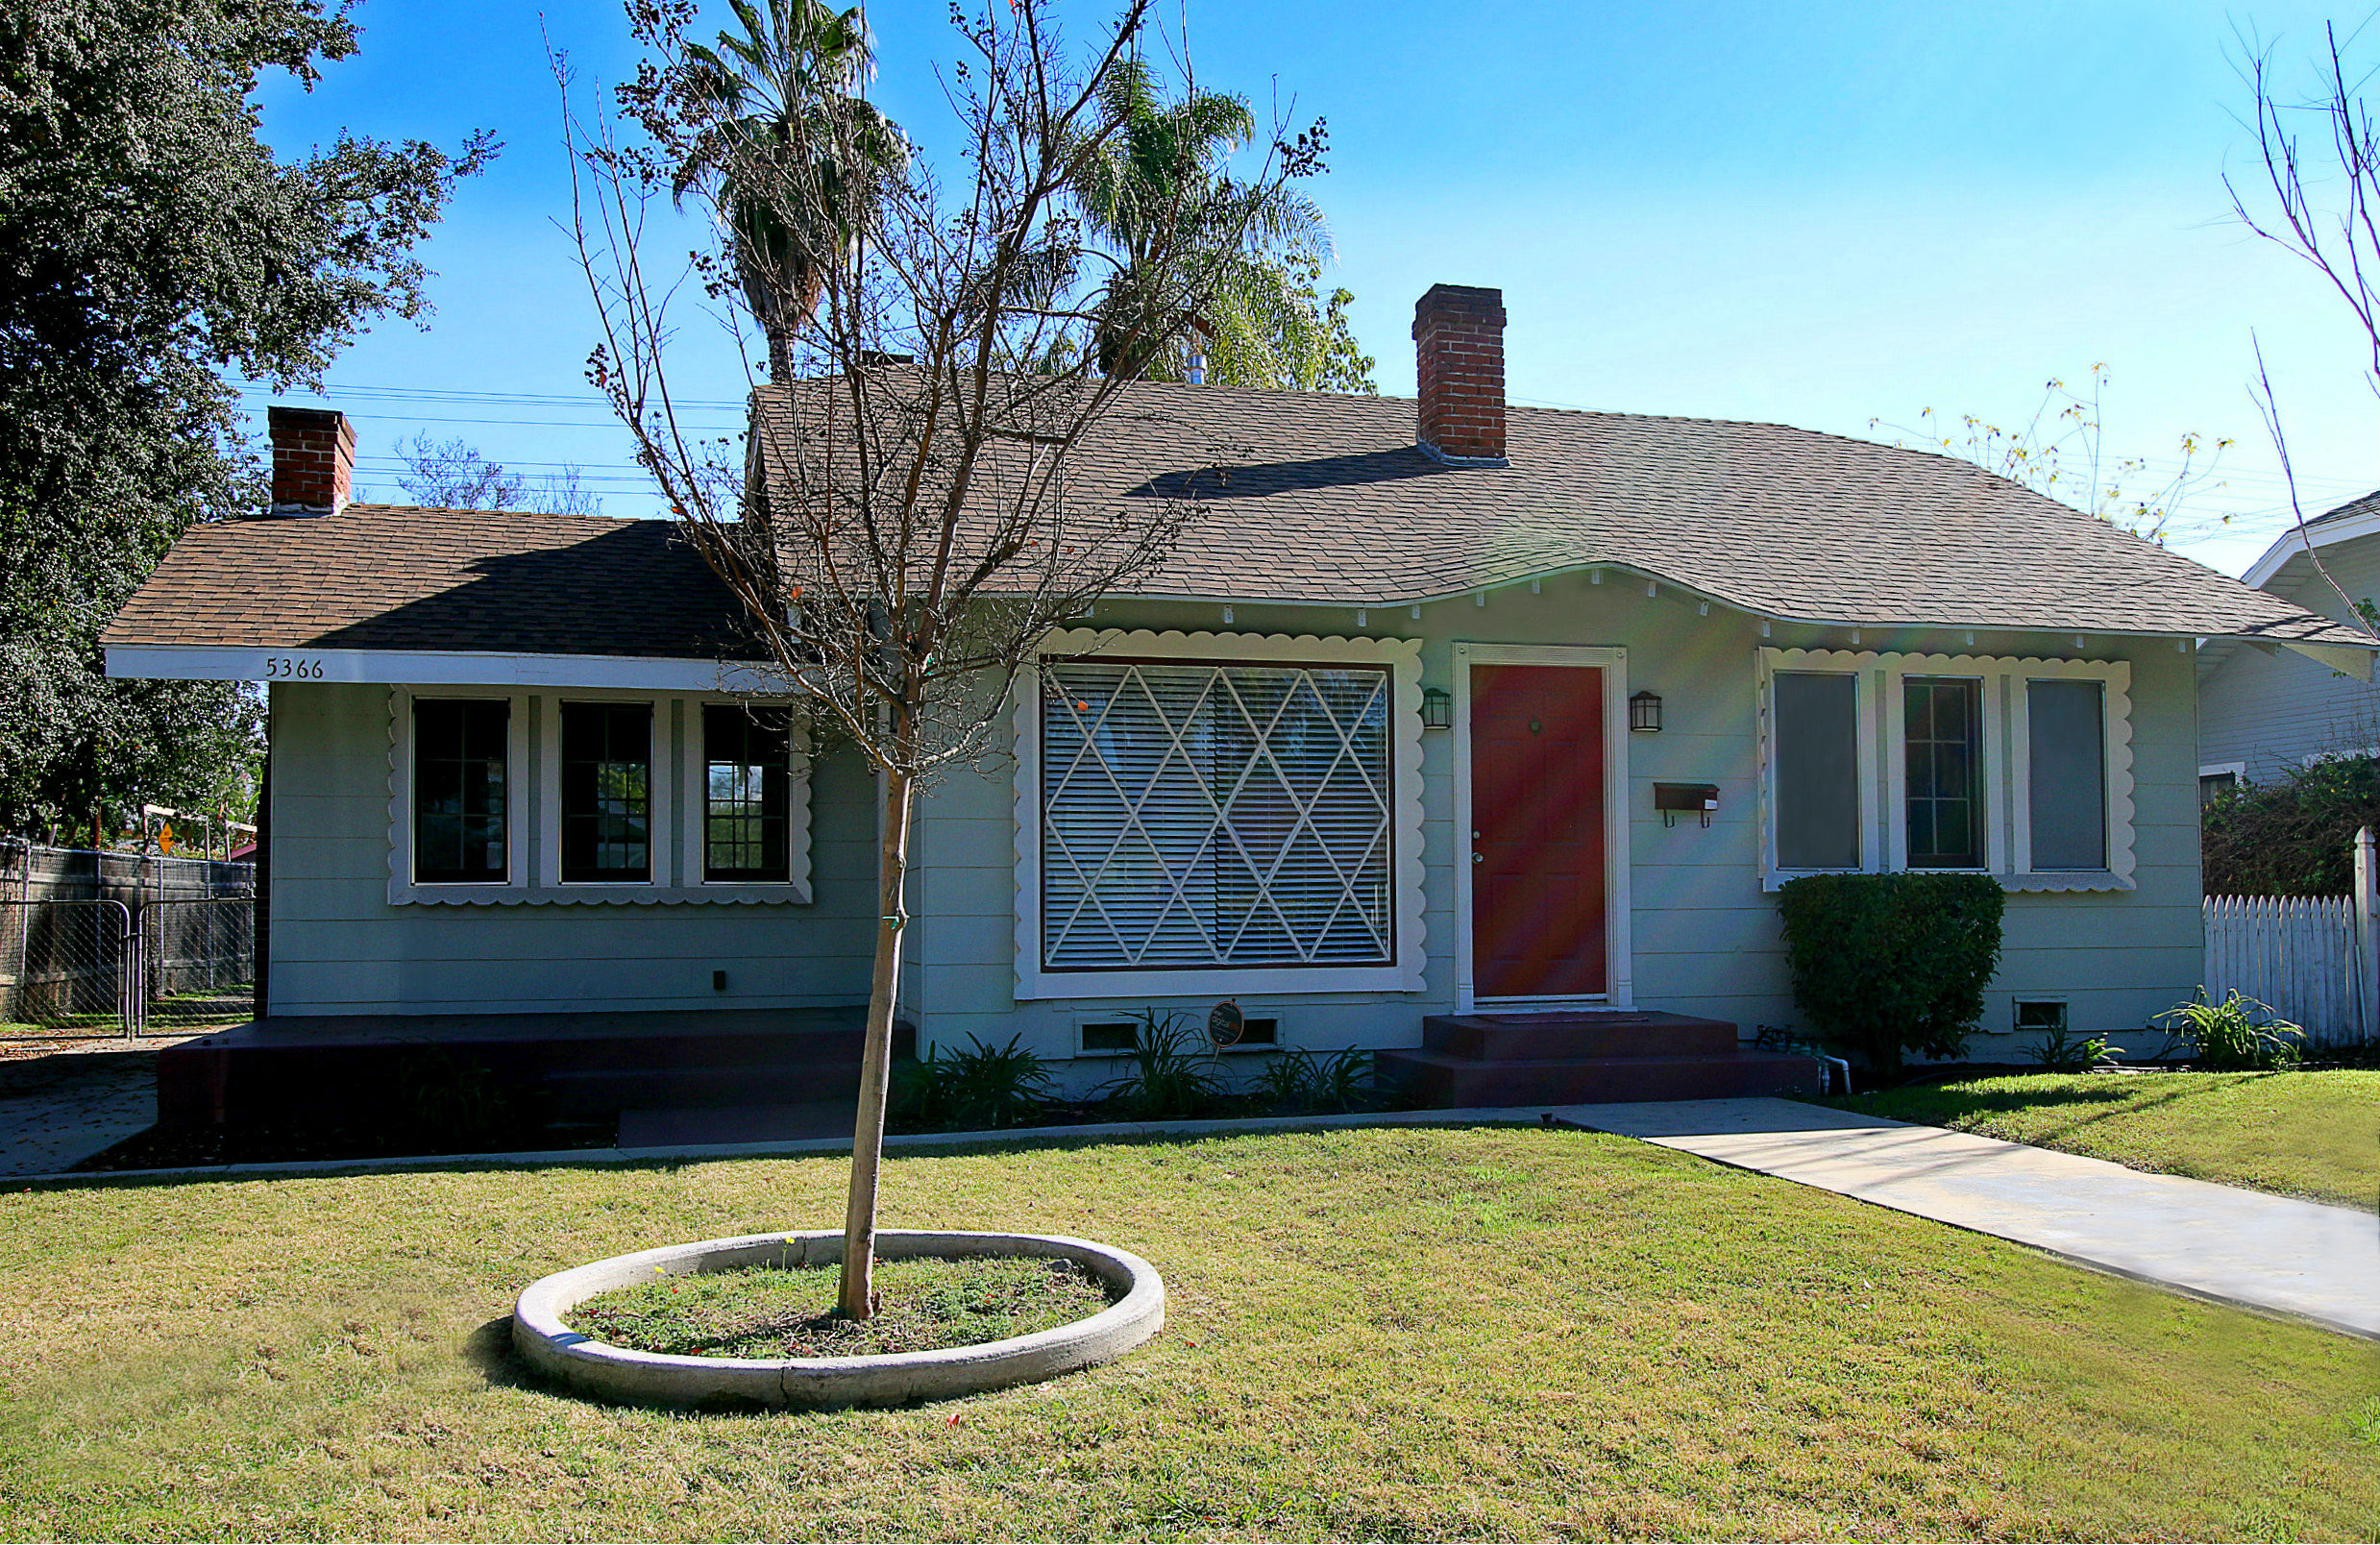 5366 Magnolia Avenue, Riverside, CA 92506 listed by THE SISTER TEAM